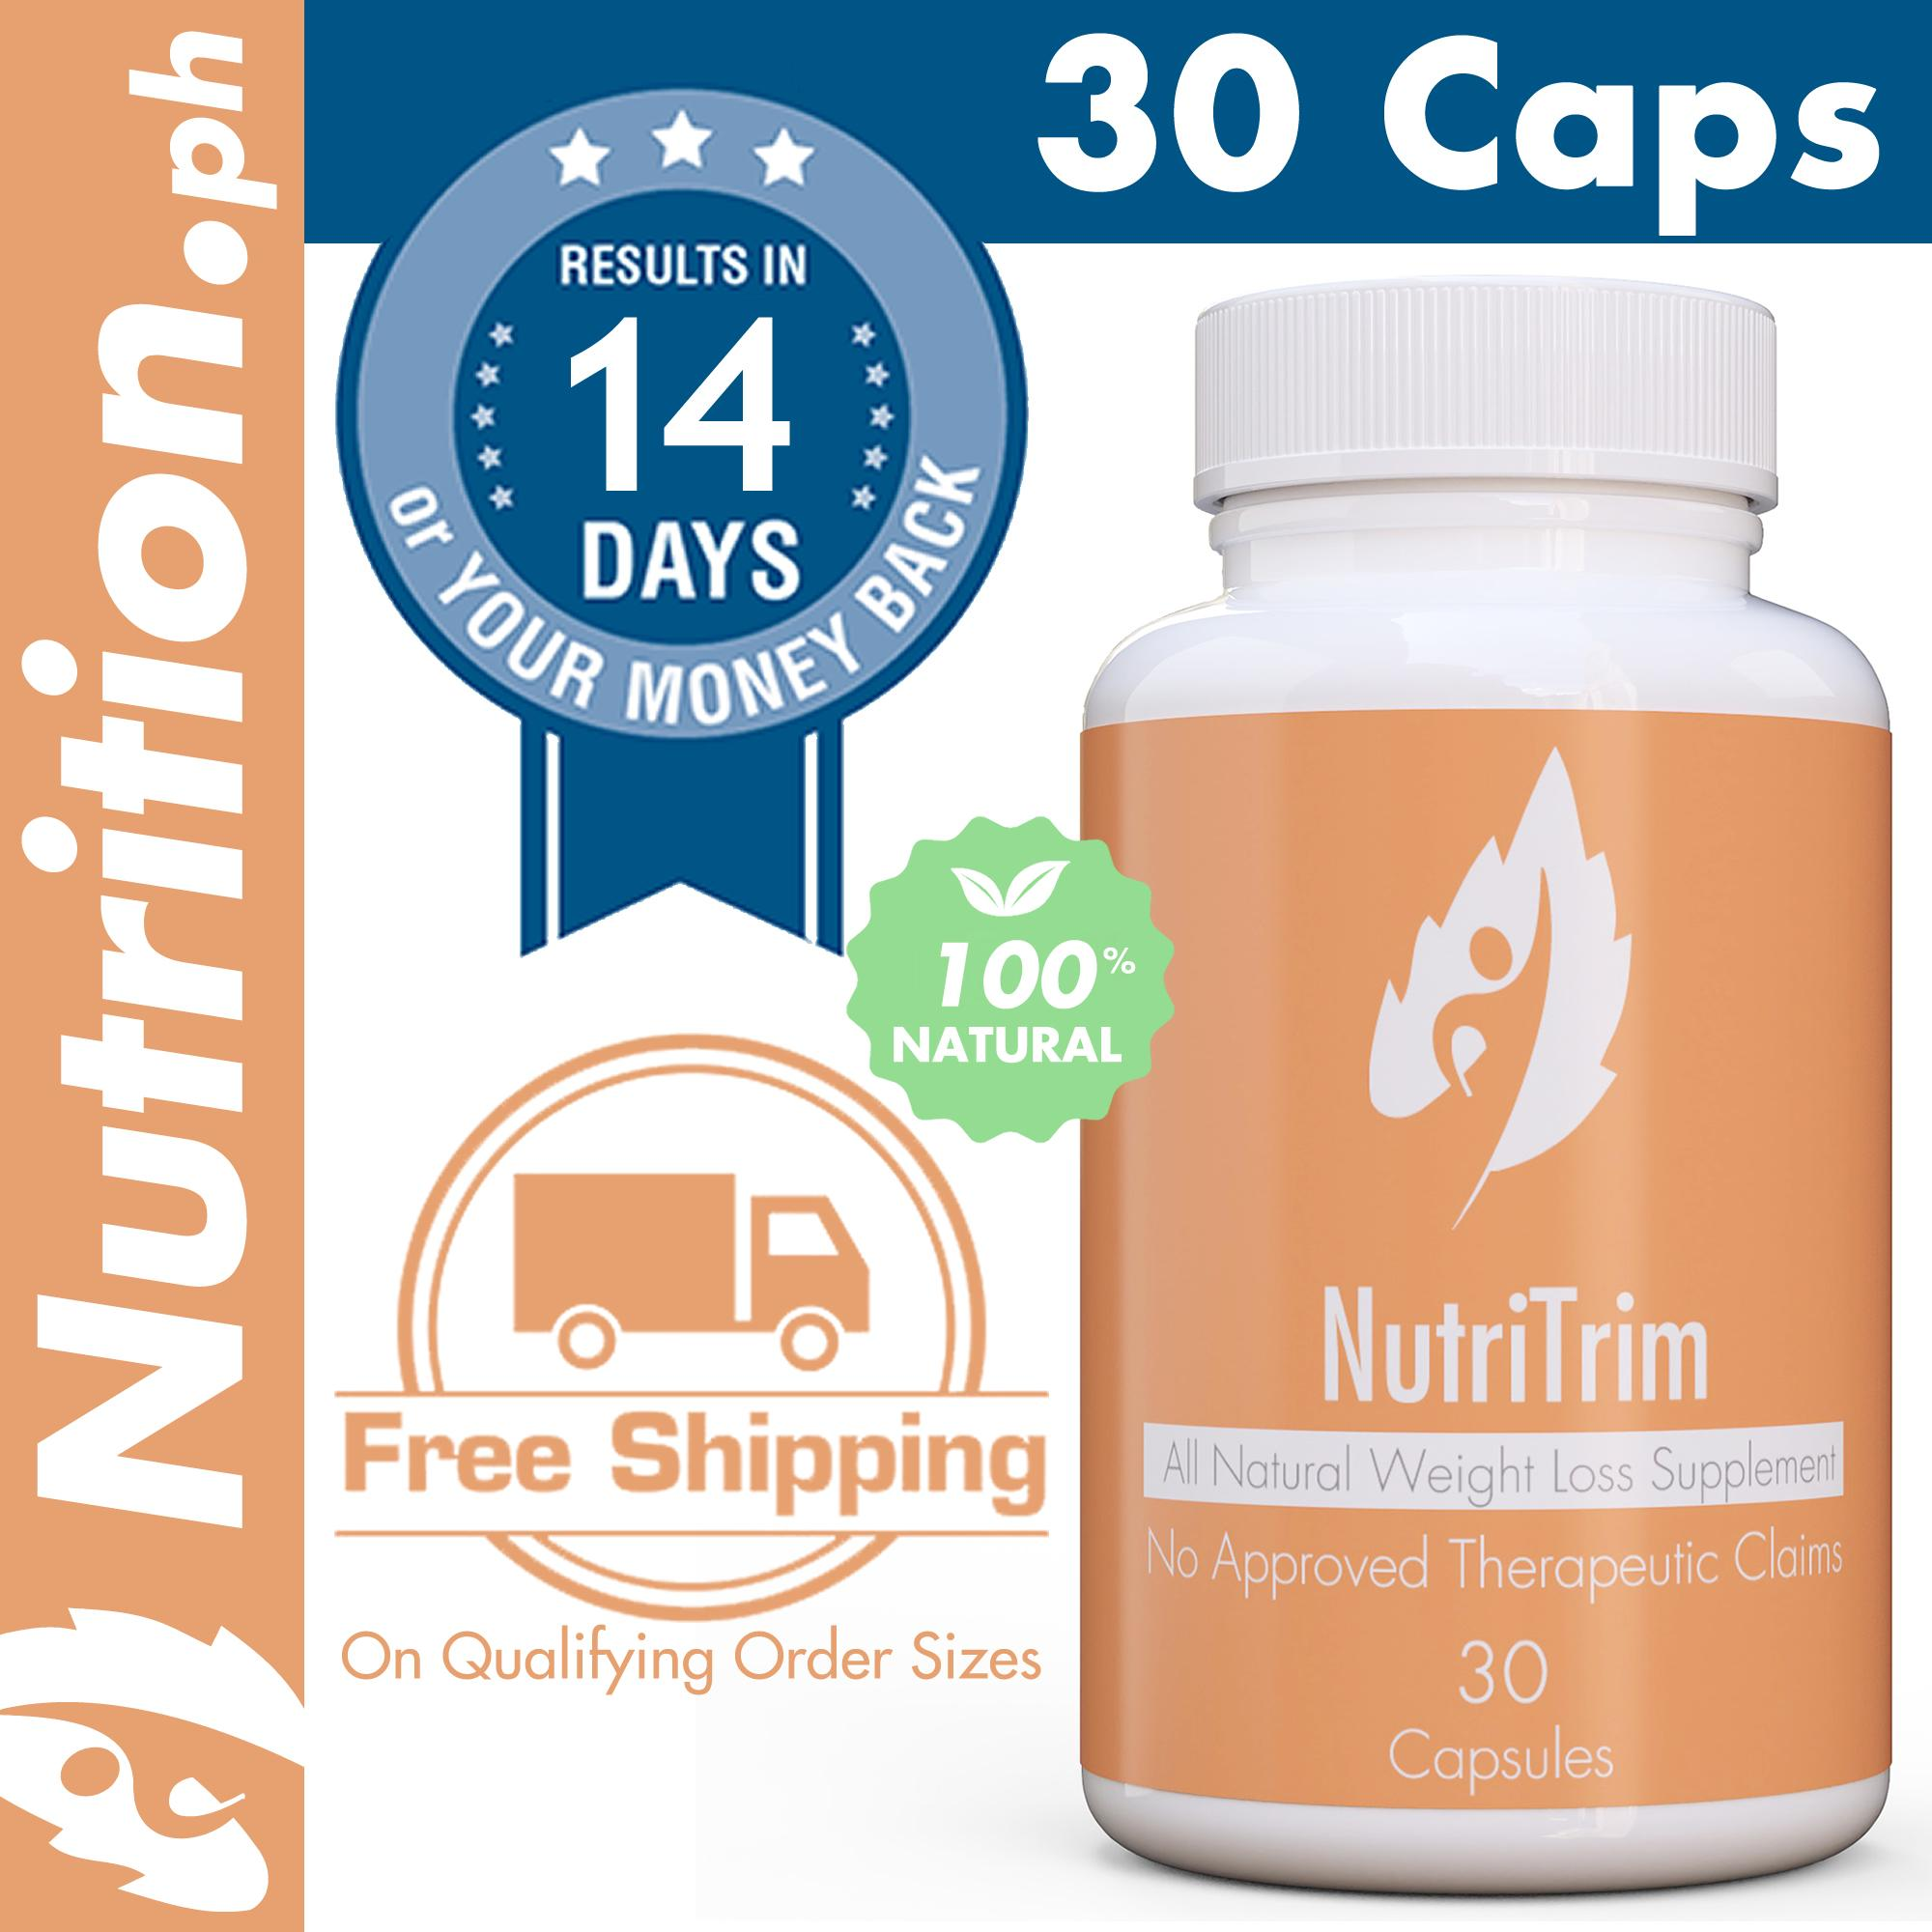 Nutrition Ph Nutritrim 30 Caps All Natural Slimming Capsule Best Weight Loss Supplement Loose Weight Body Slimming Pills Capsules